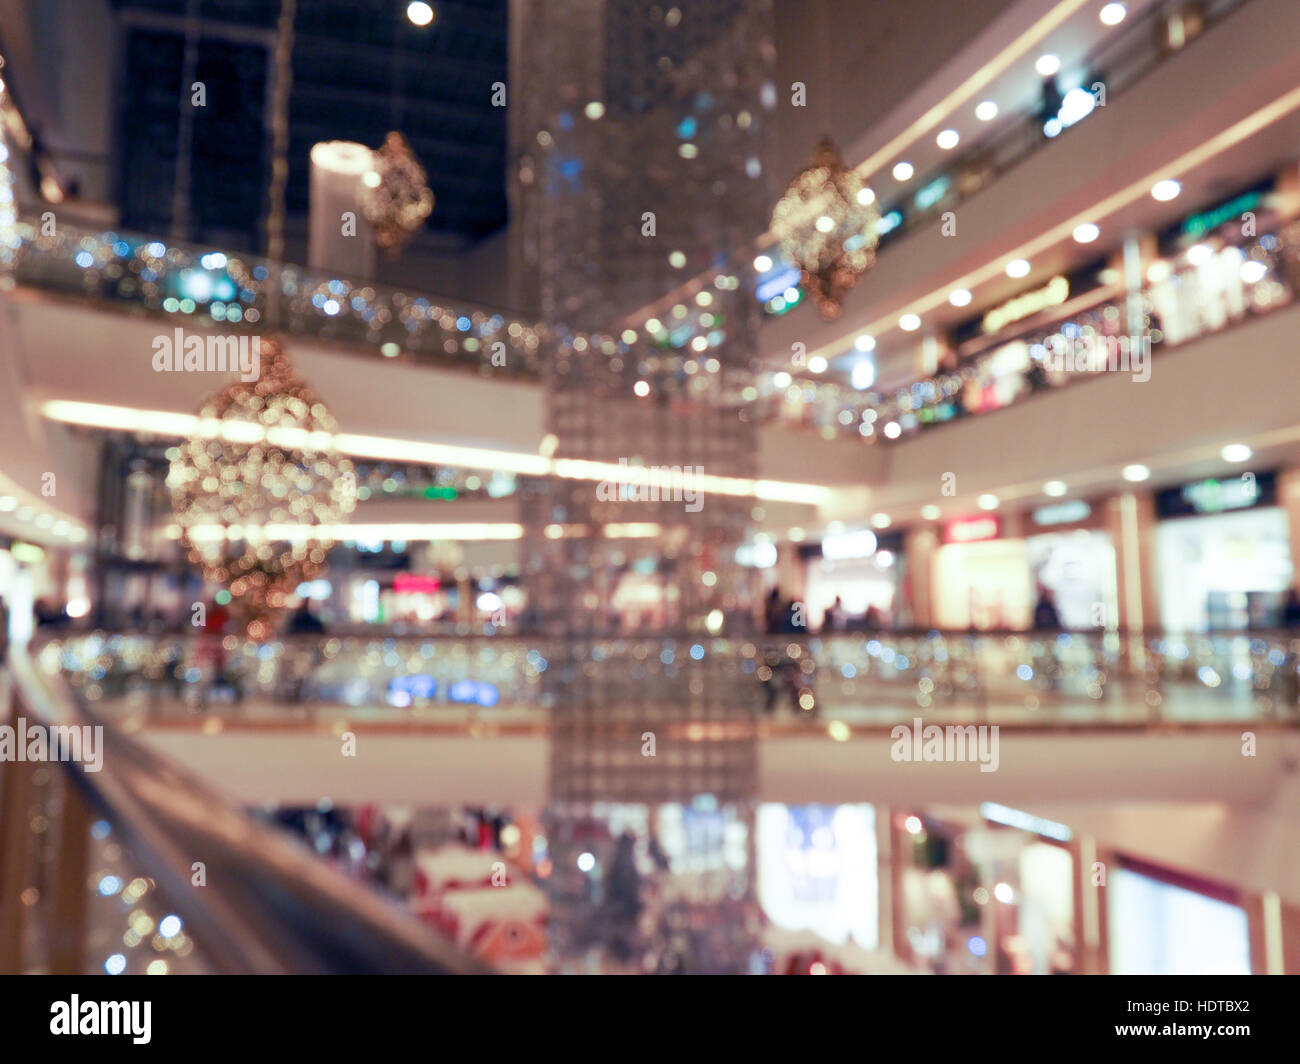 Time of Christmas sales, shopping center, festively decorated. blurred background - Stock Image